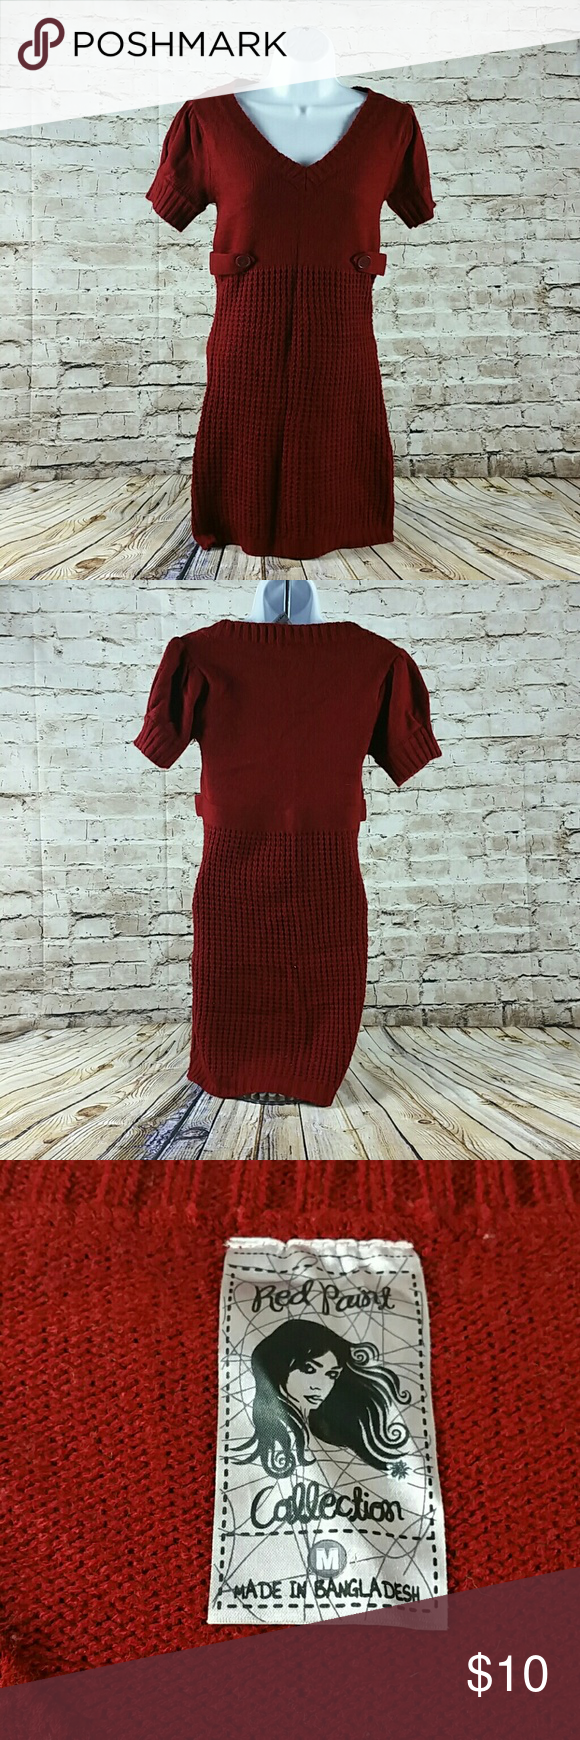 Womens Sweater Dress V Neck Sweater Dress, Short Sleeve. Red Paint Collection  Skirts